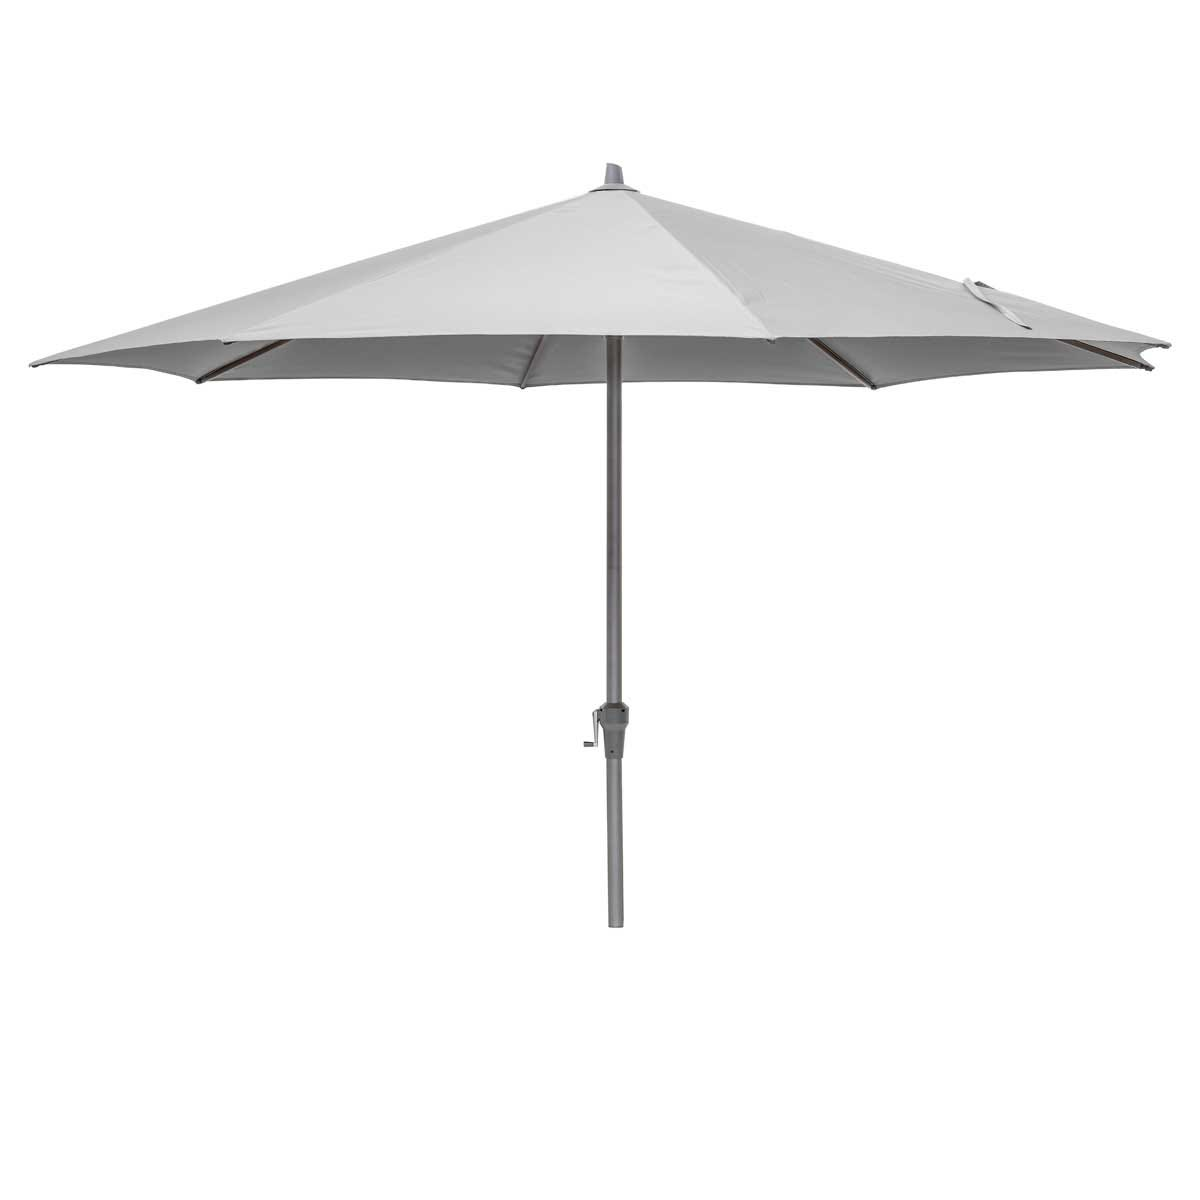 Platinum Riva 3.5m Round Parasol (base not included) - Light Grey